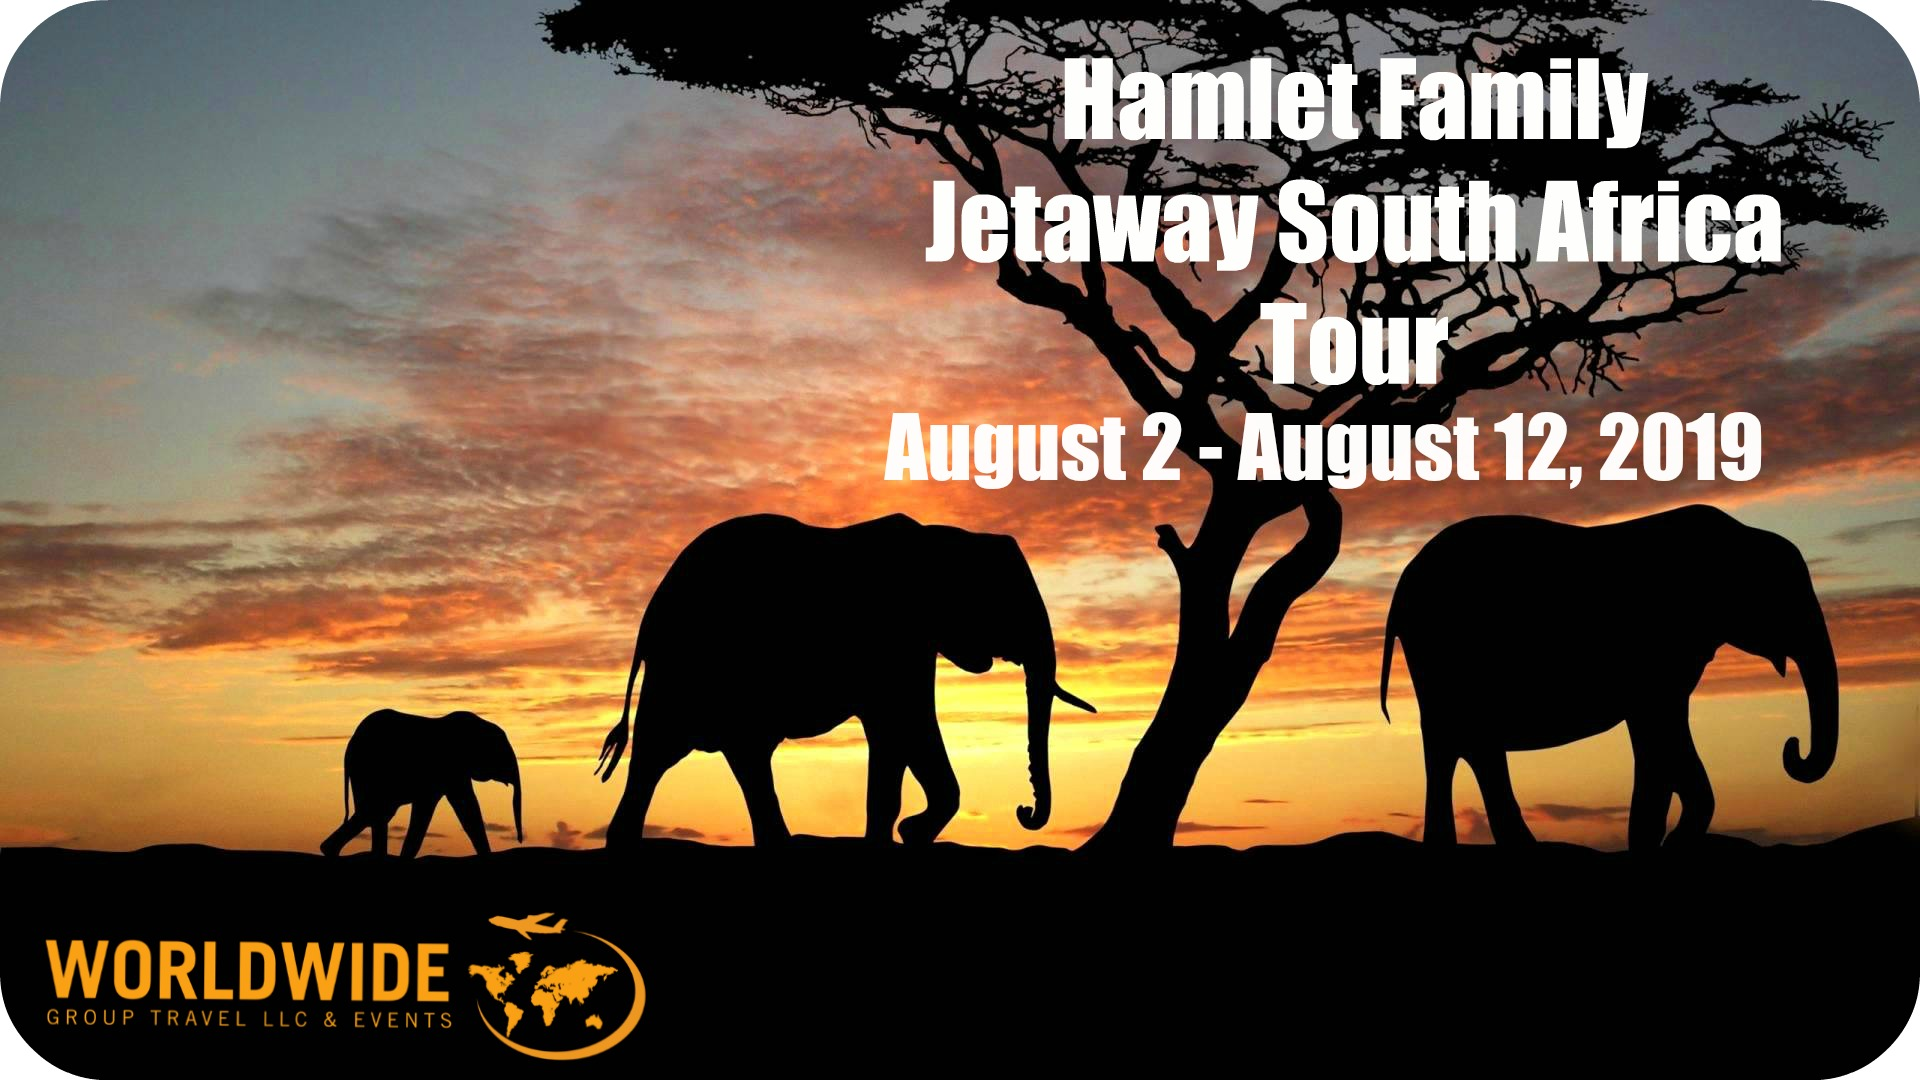 Hamlet Family Jetaway  South Africa Tour